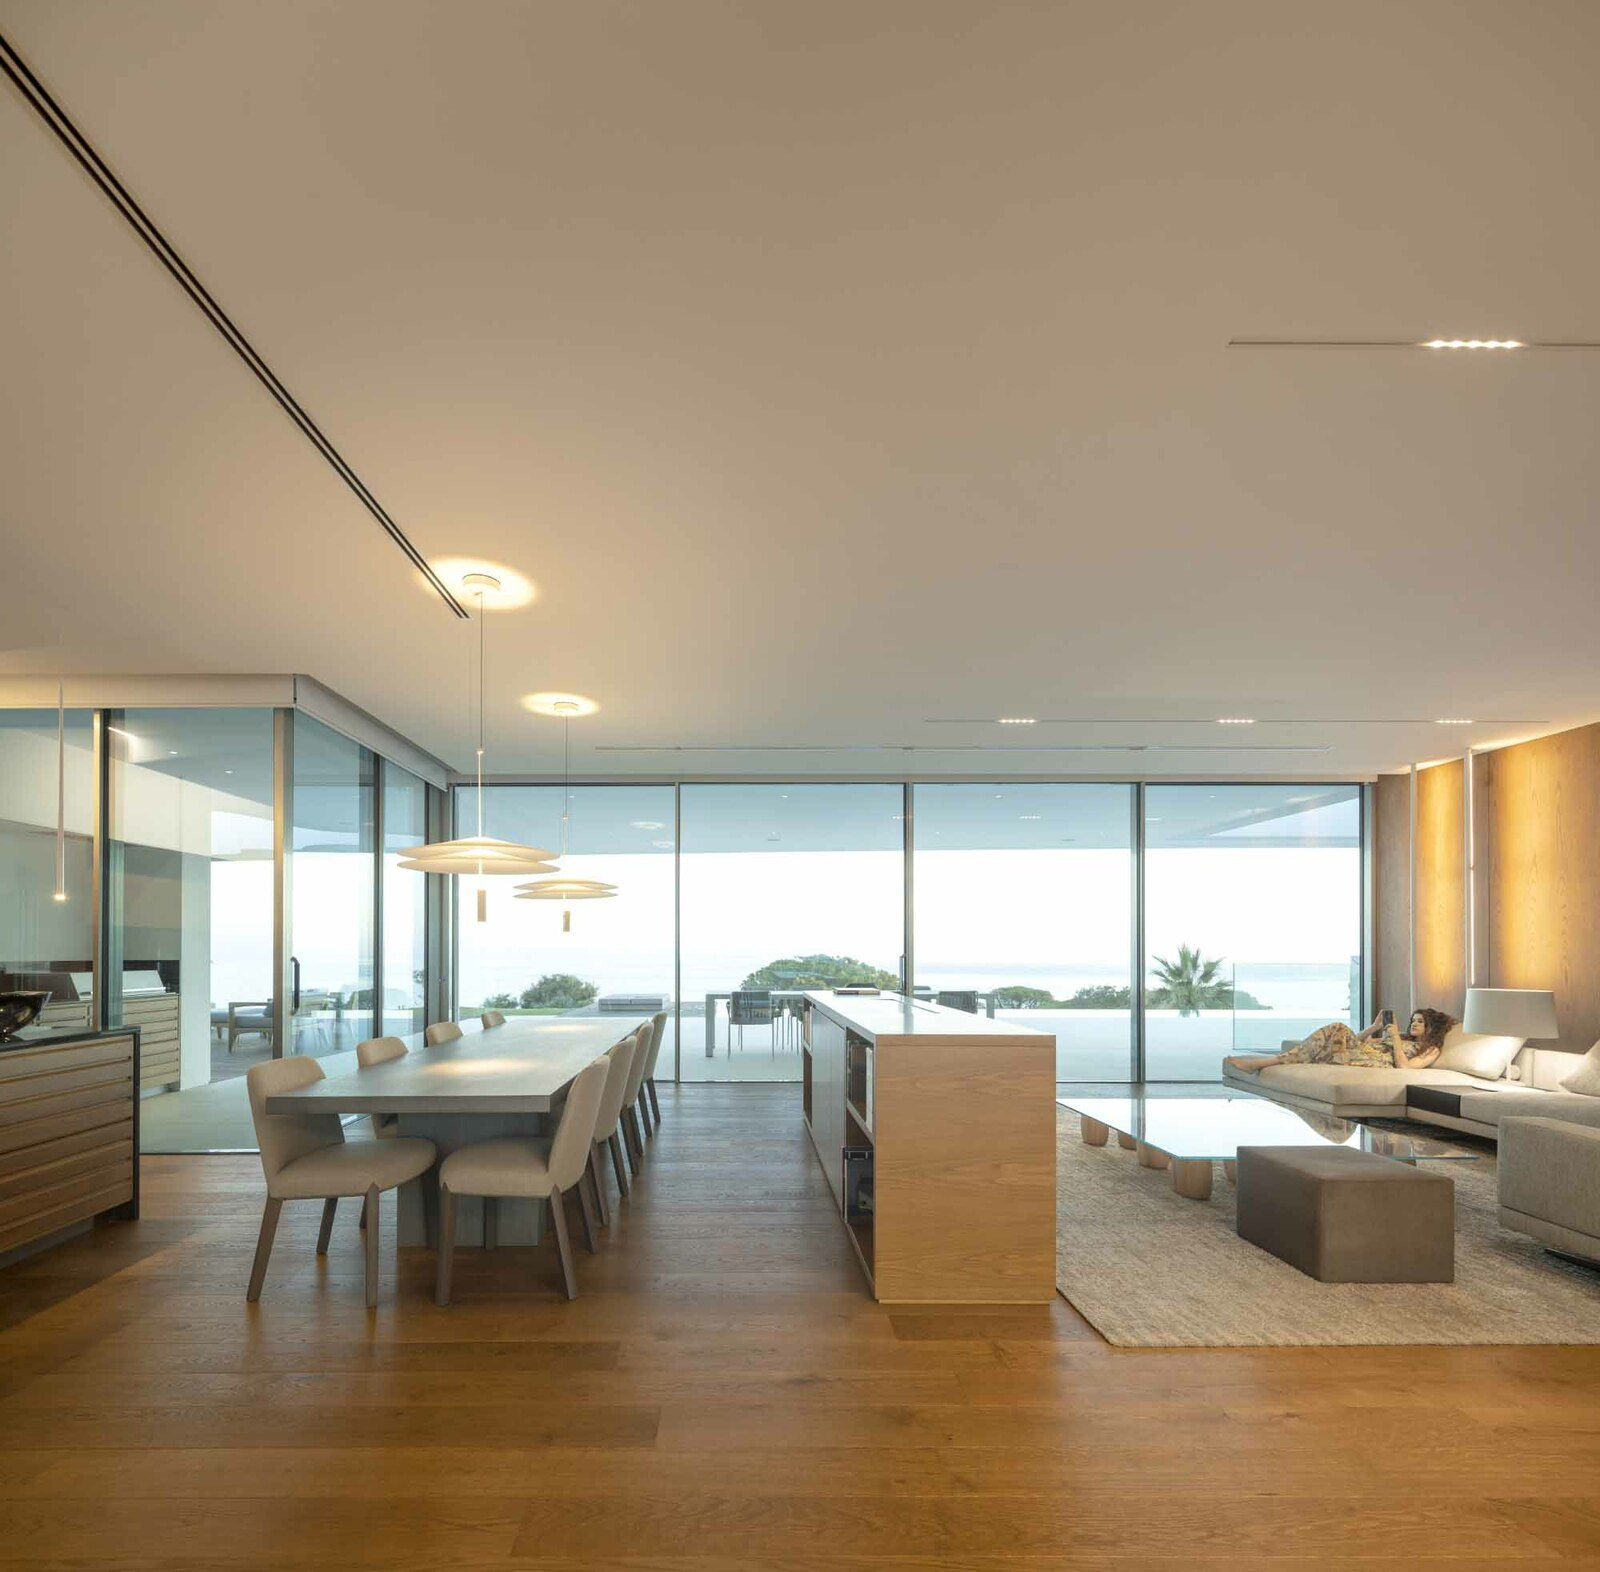 LUX MARE HOUSE IN LAGOS, BY MARIO MARTINS ATELIER